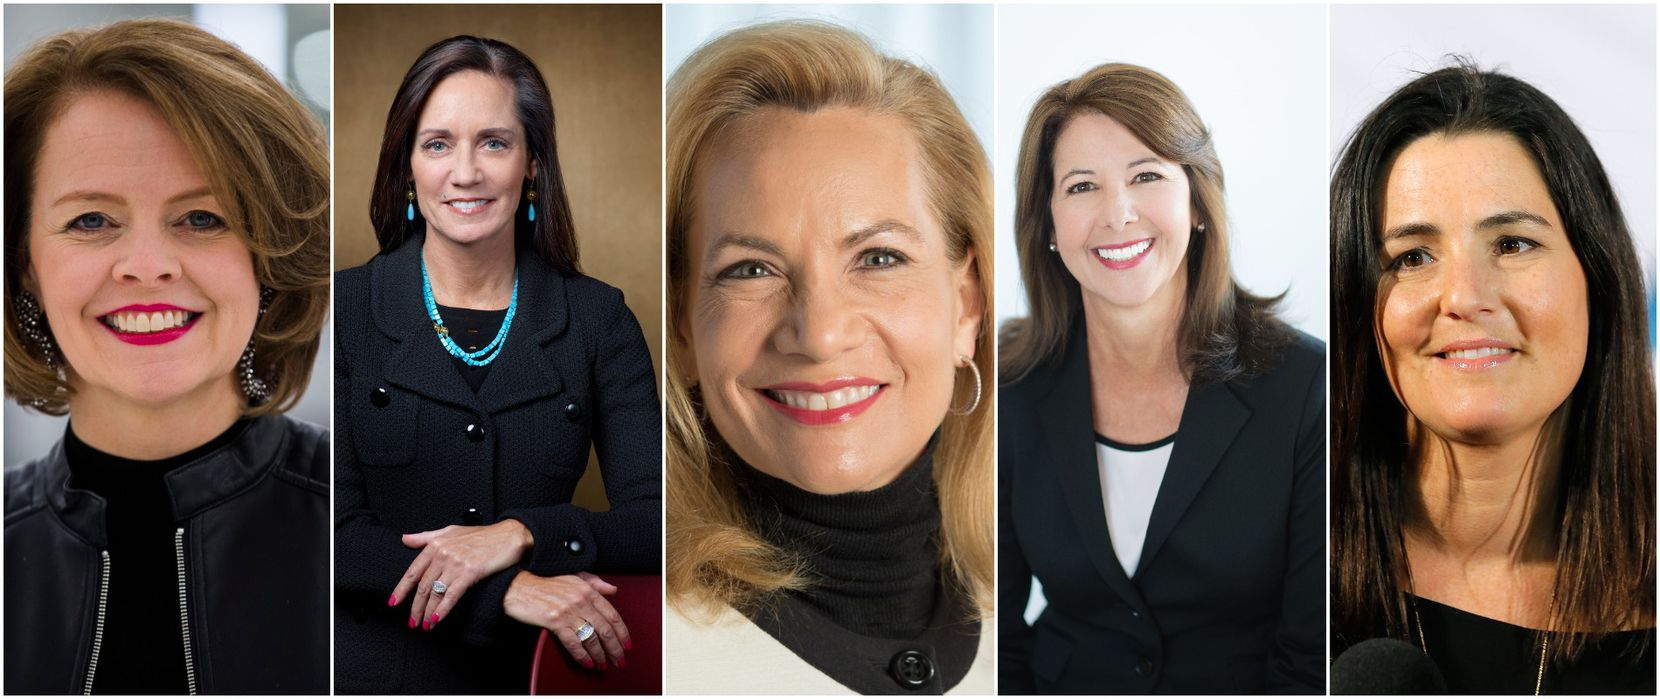 Five women made this year's list of highest-paid CEOs at Dallas-Fort Worth public companies. From left: Jill Soltau, Barbara Smith, Lori Ryerkerk, Kimberly Lody and Mandy Ginsberg.